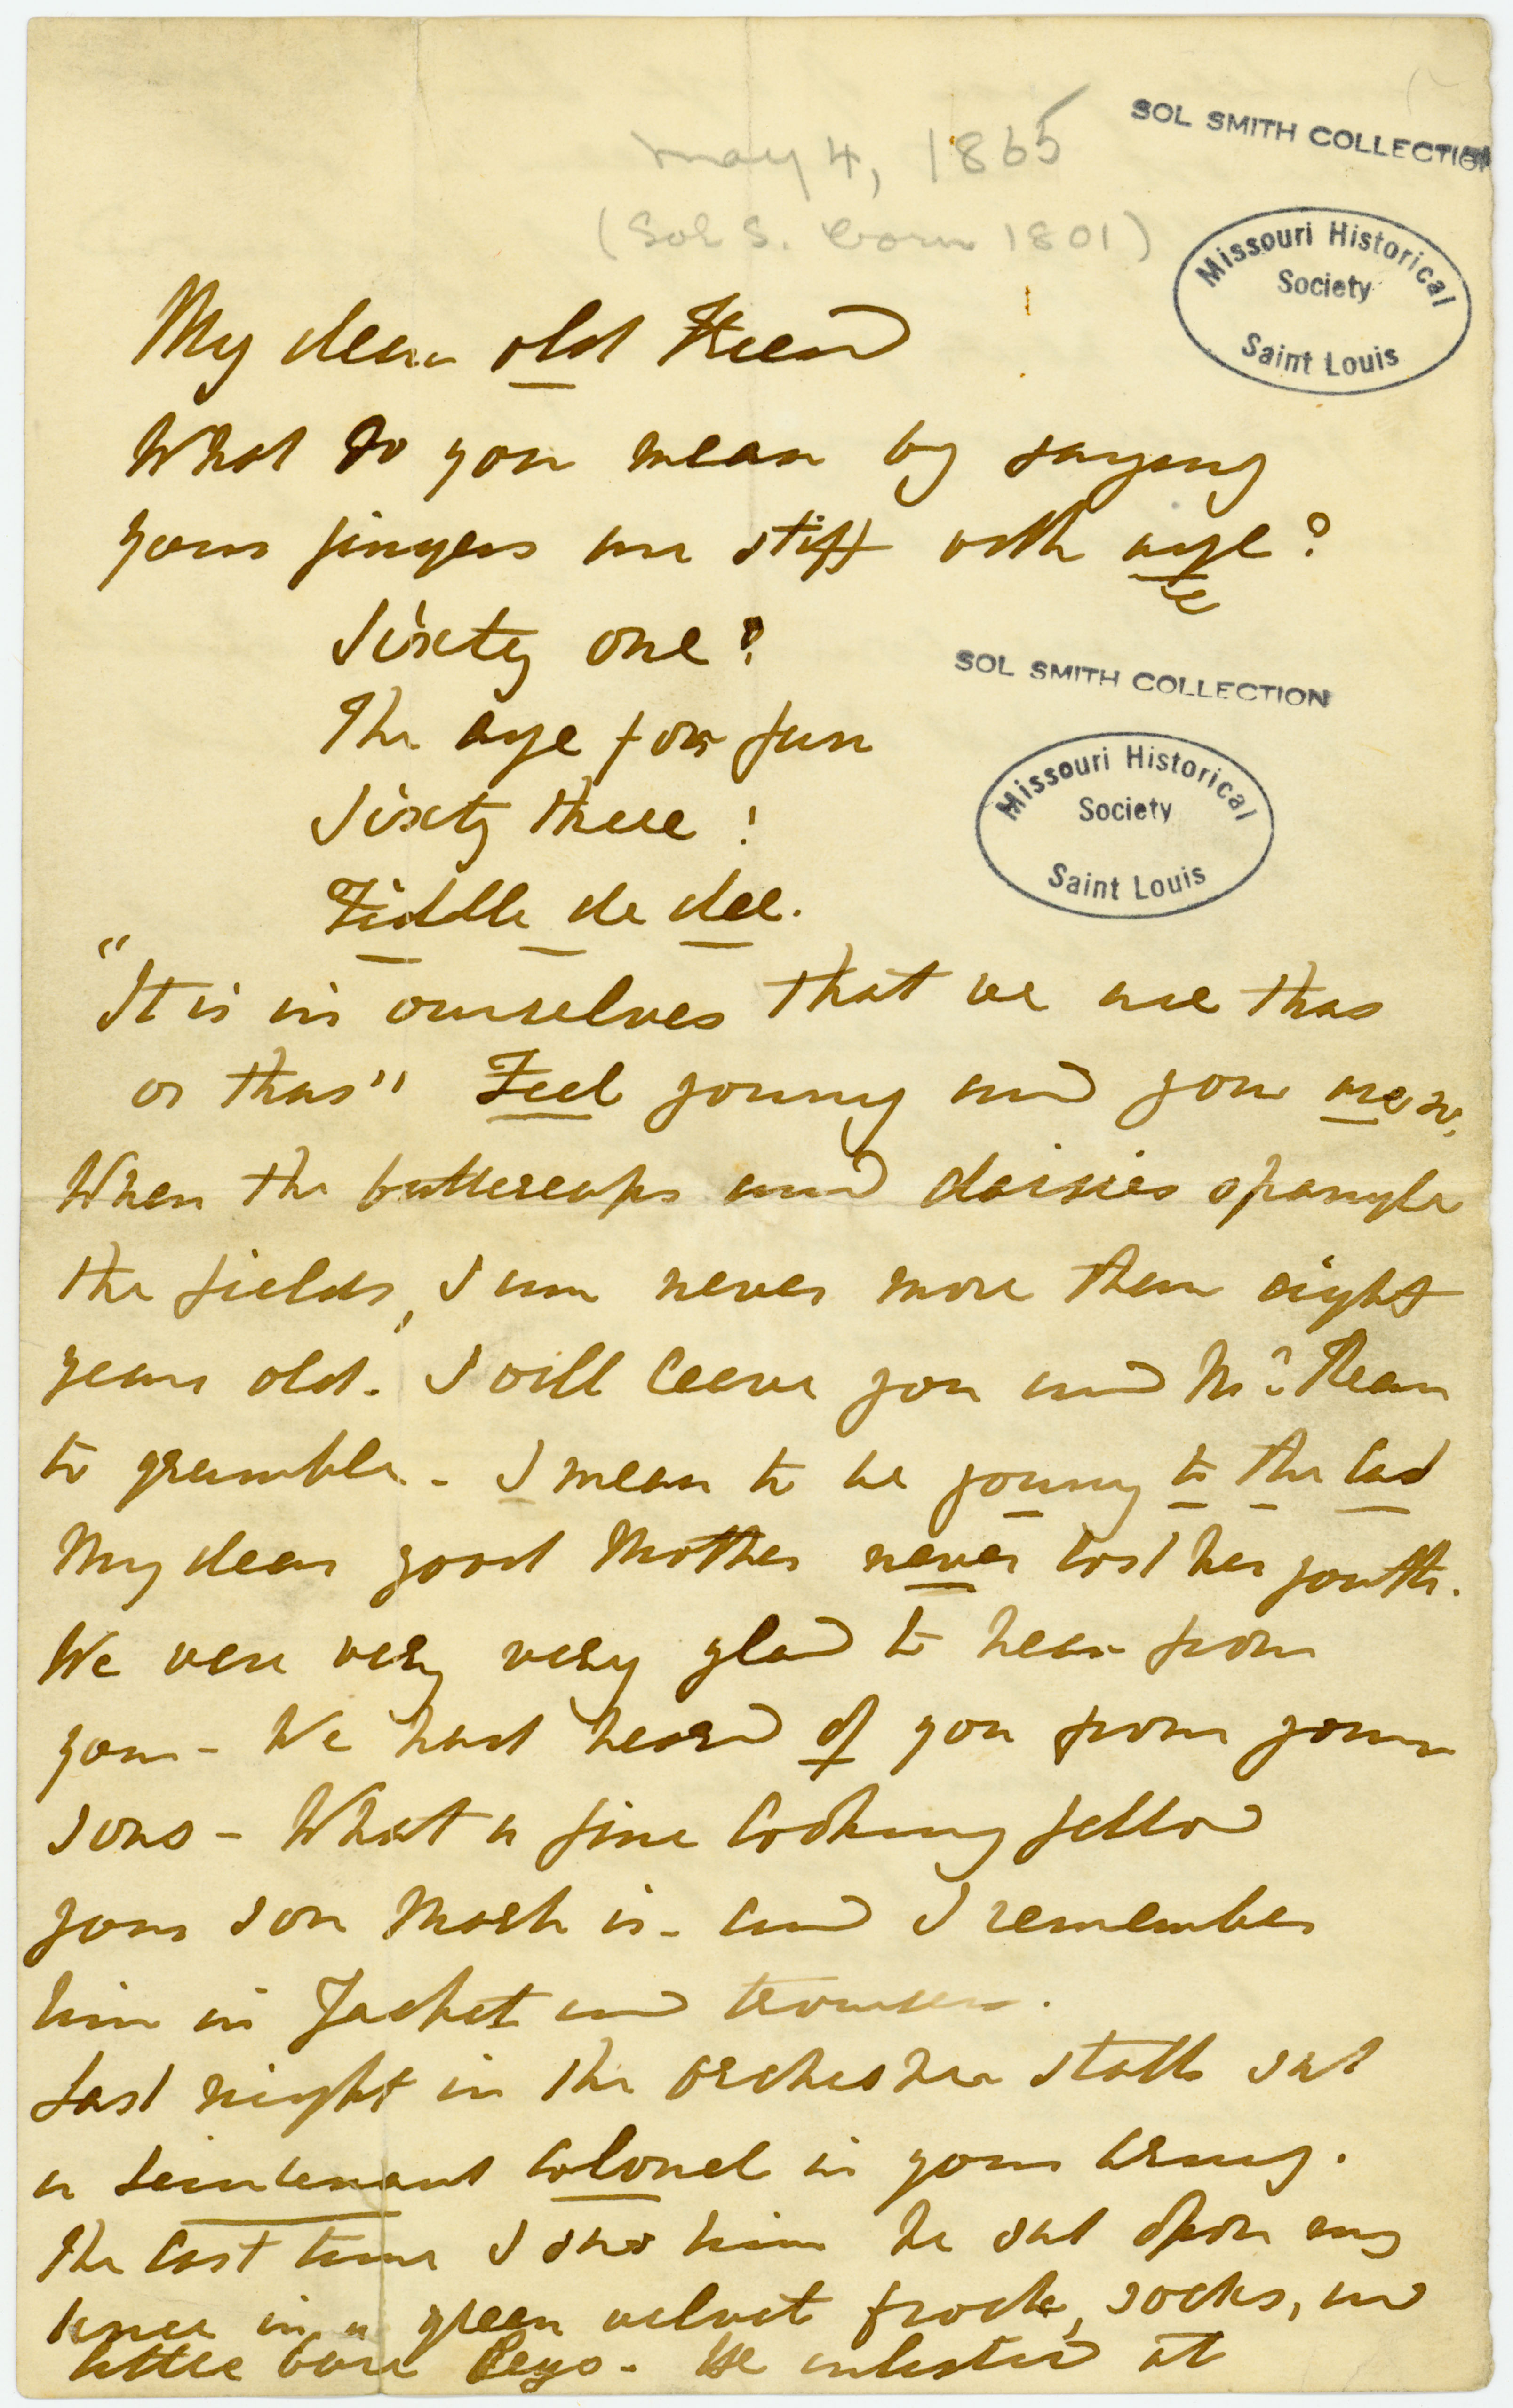 Letter of Ellen Kean, New York, to Sol Smith, May 4, 1865